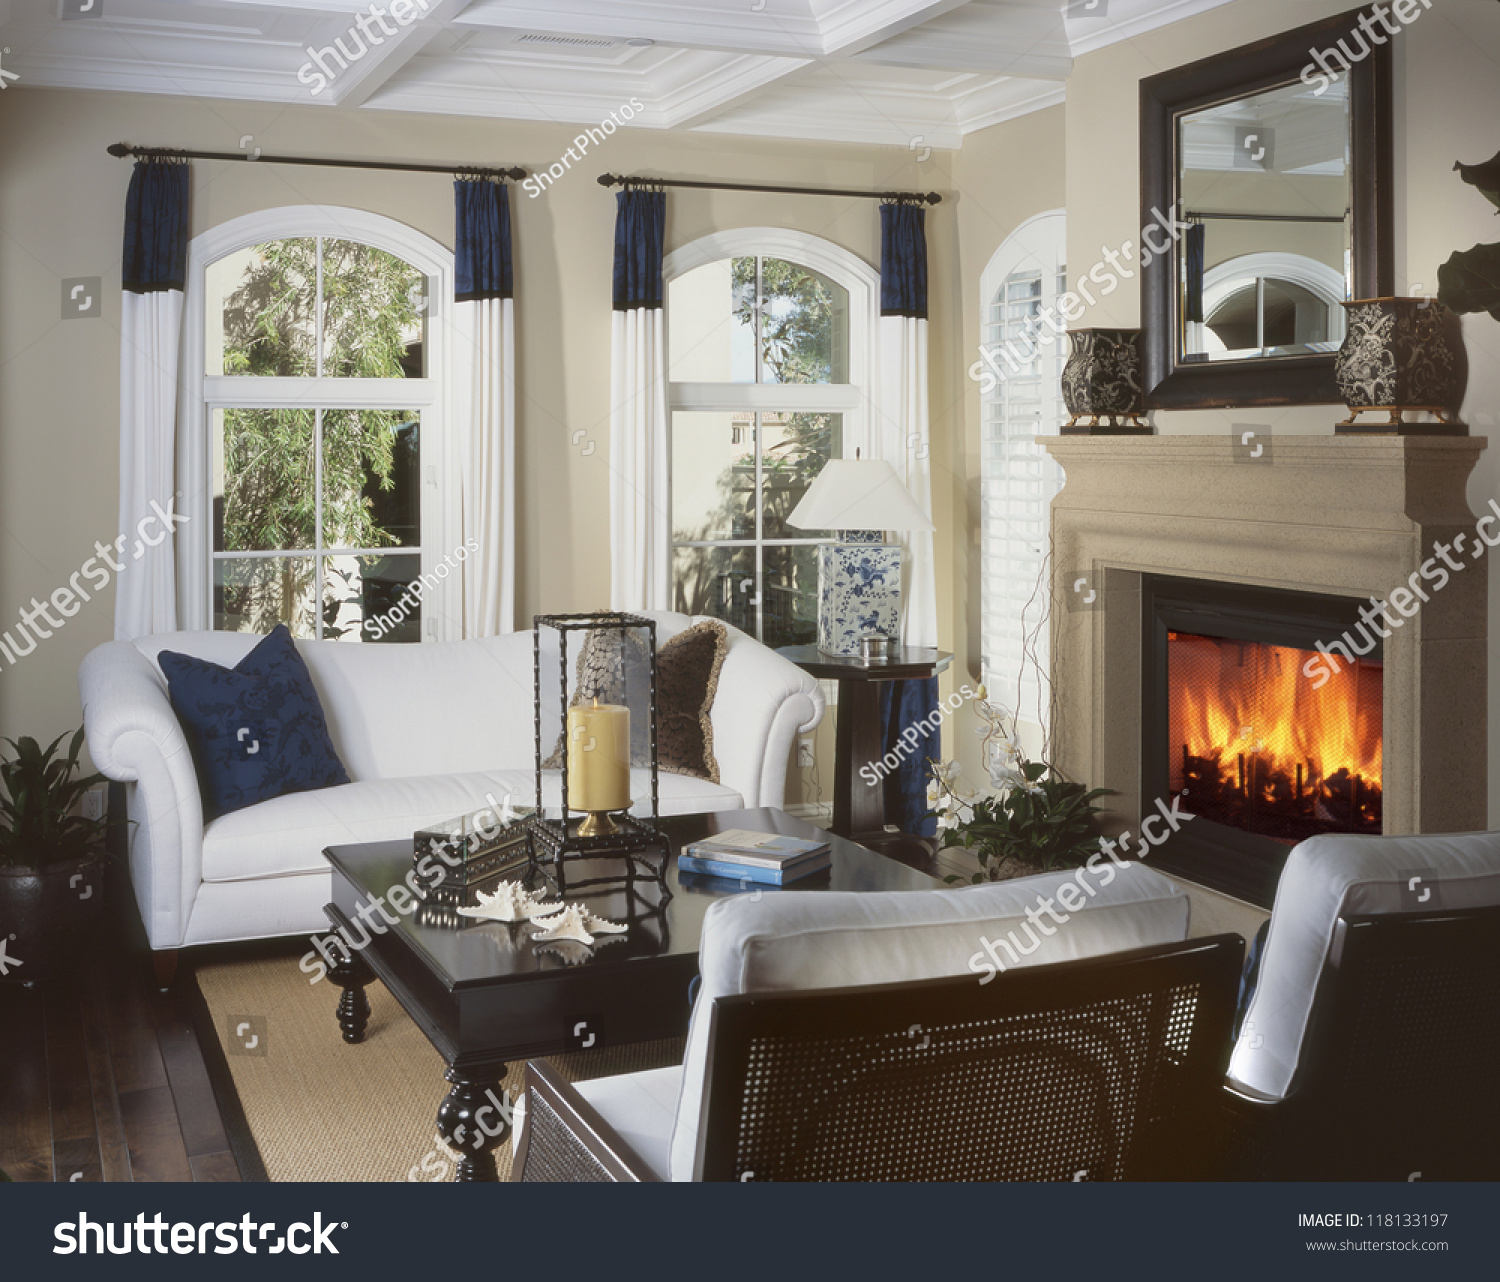 Beautiful living room architecture stock images stock photo 118133197 shutterstock - Beautifull rooms ...